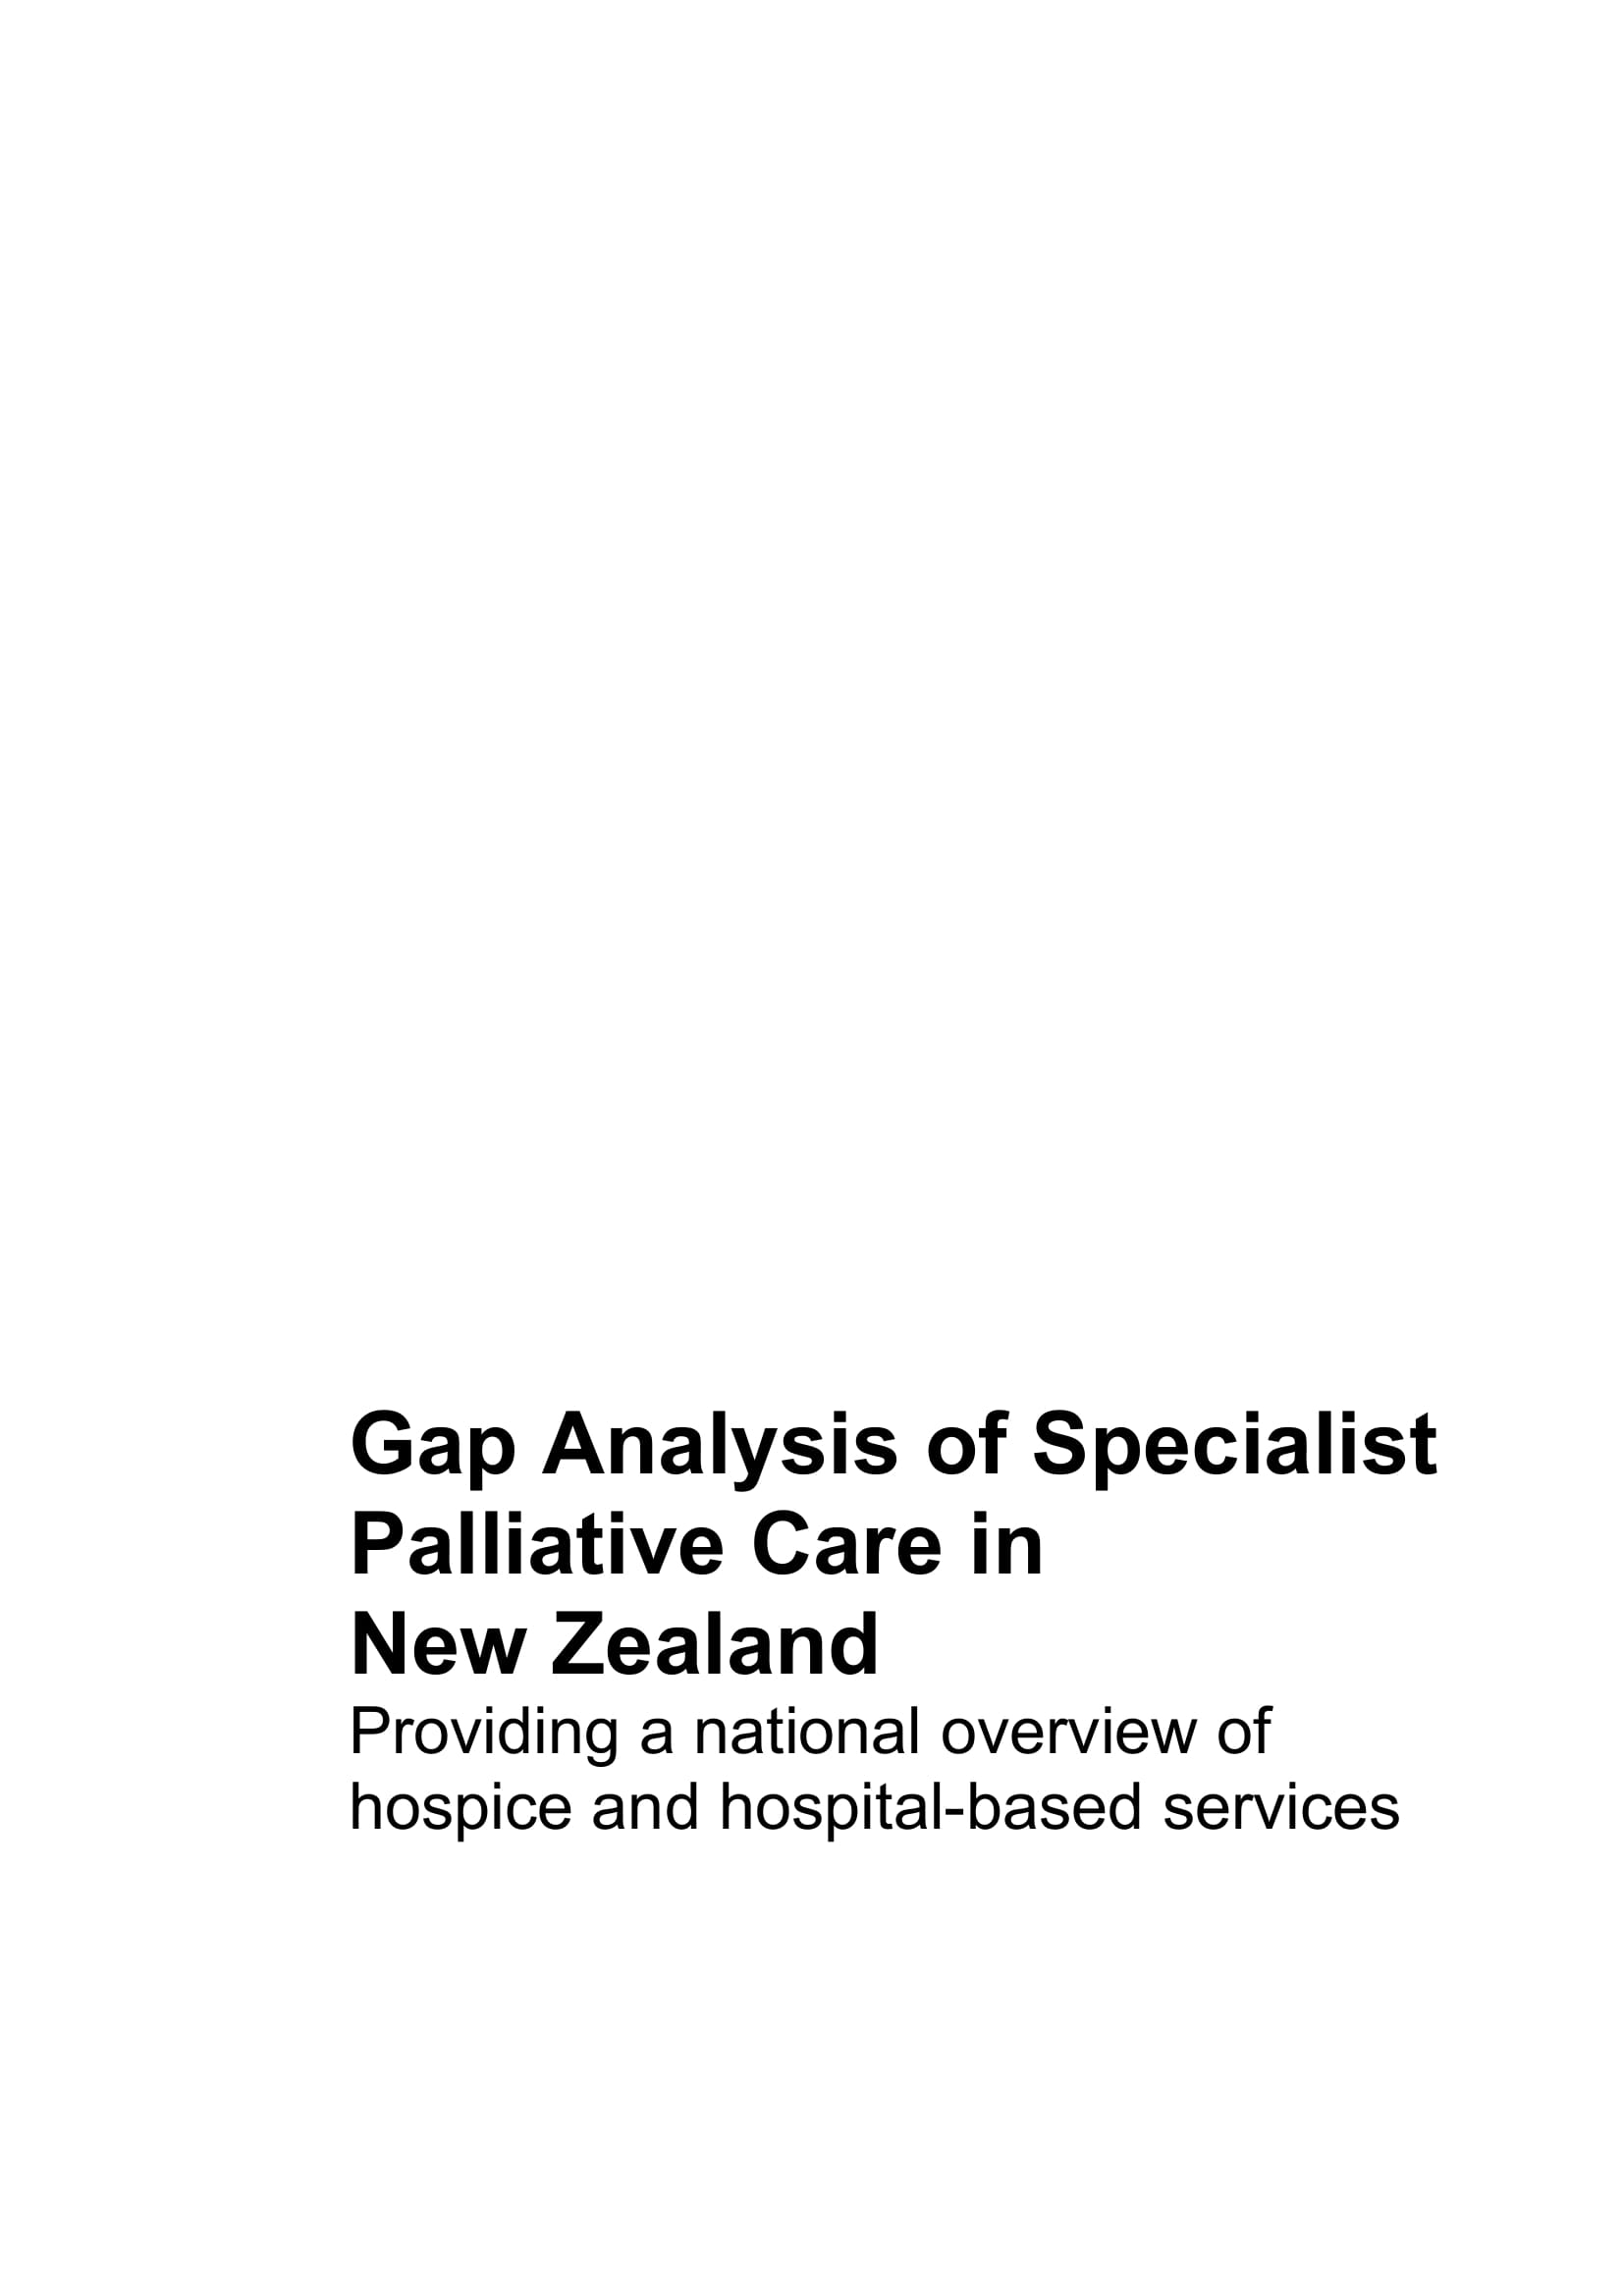 healthcare gap analysis of specialist palliative care in new zealand example 01